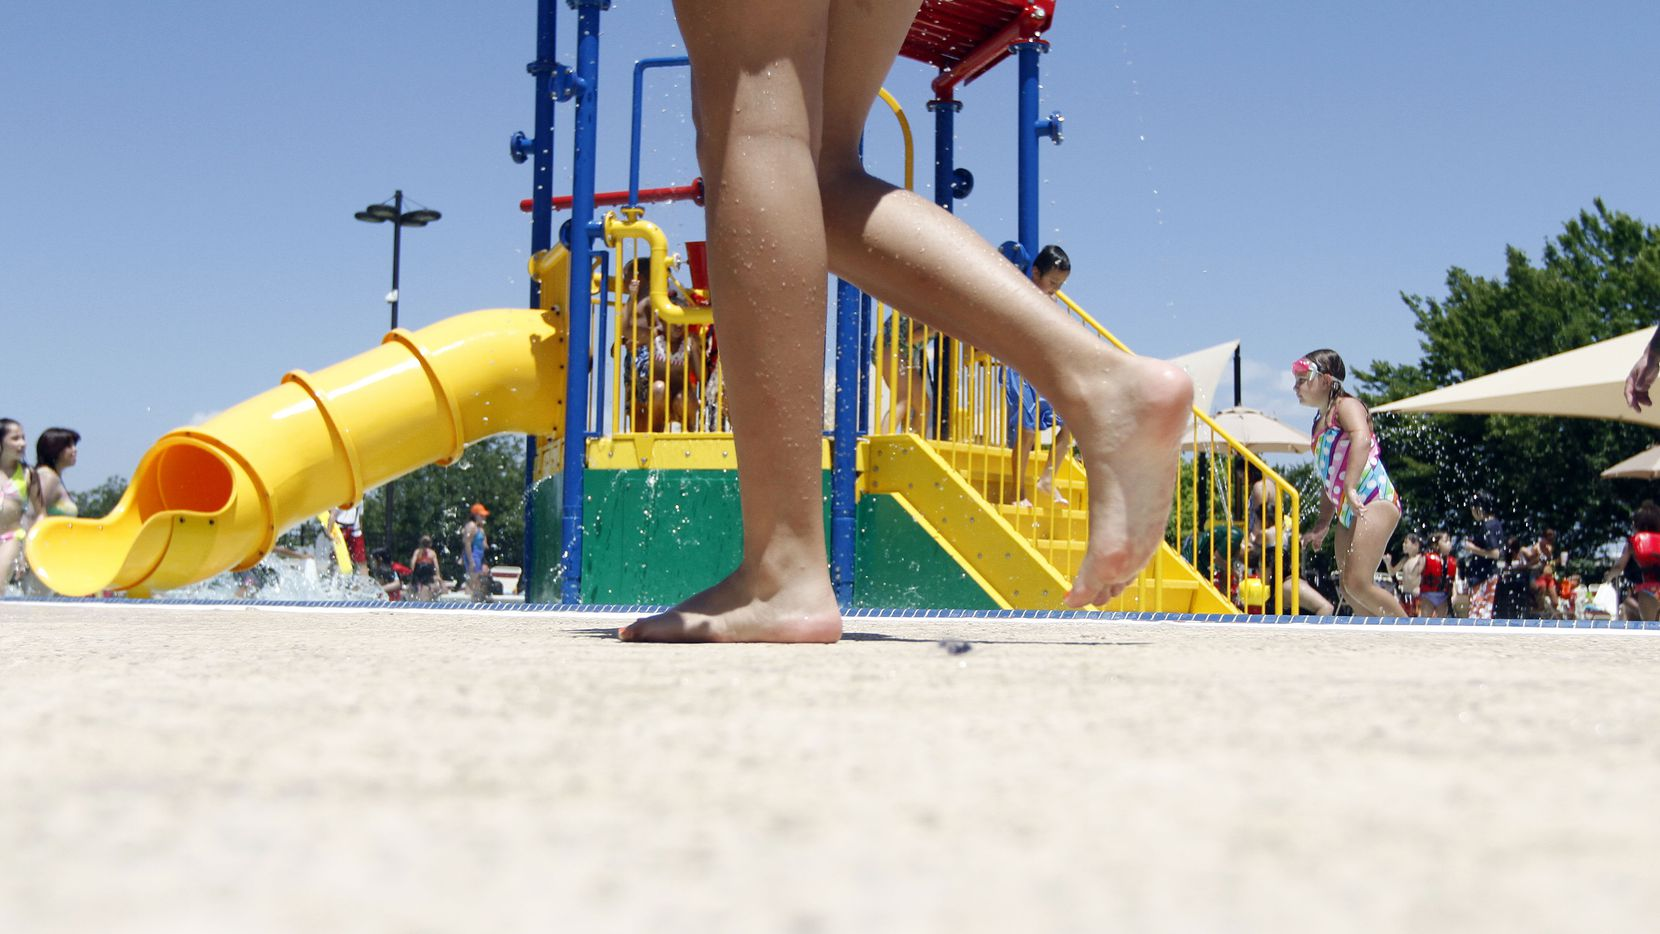 Parents and children alike enjoyed themselves at the West Irving Aquatic Center in 2010.